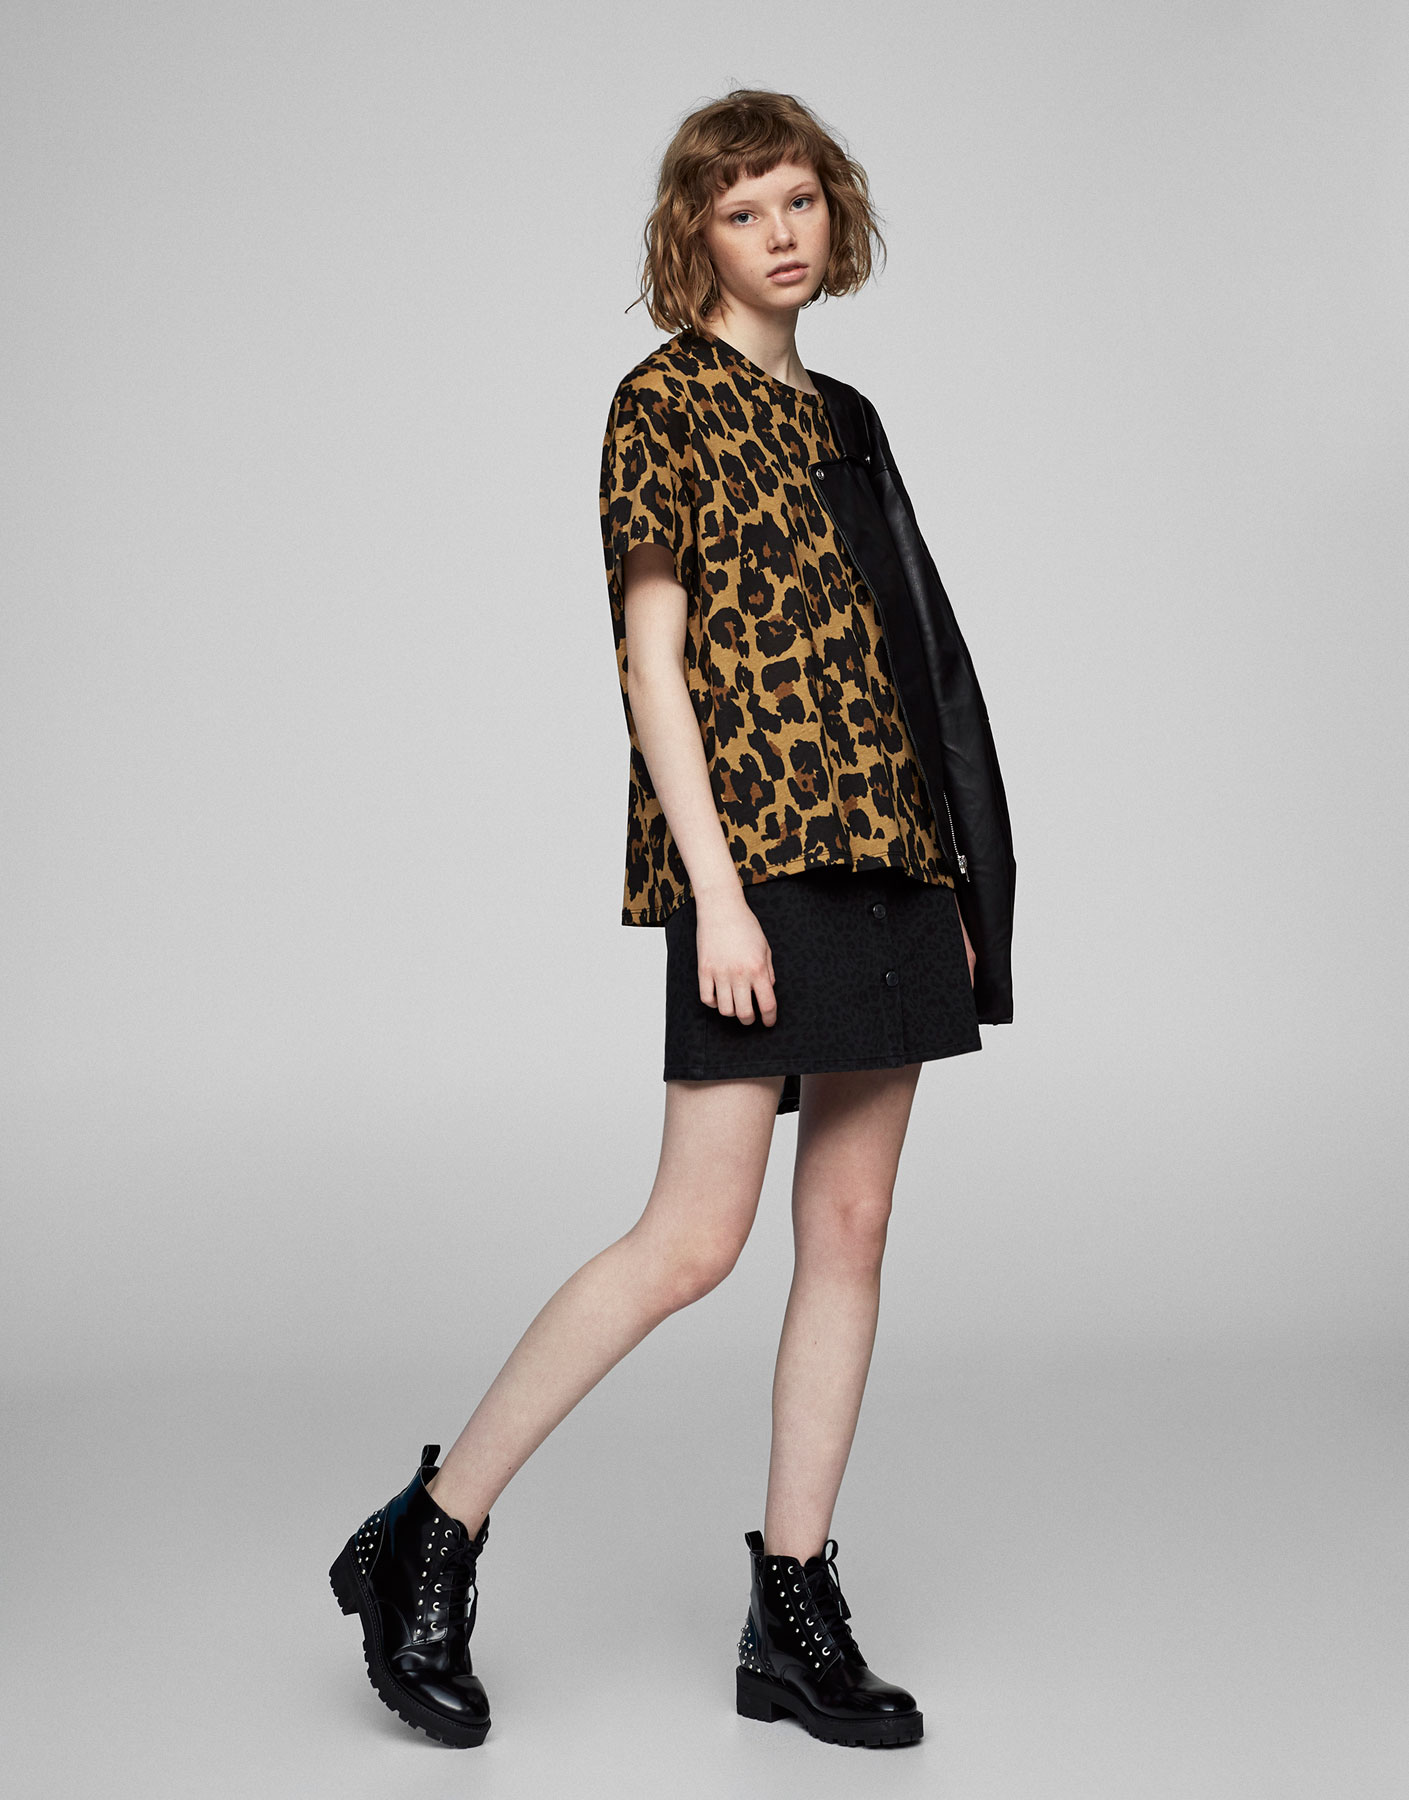 T-shirt com estampado de leopardo